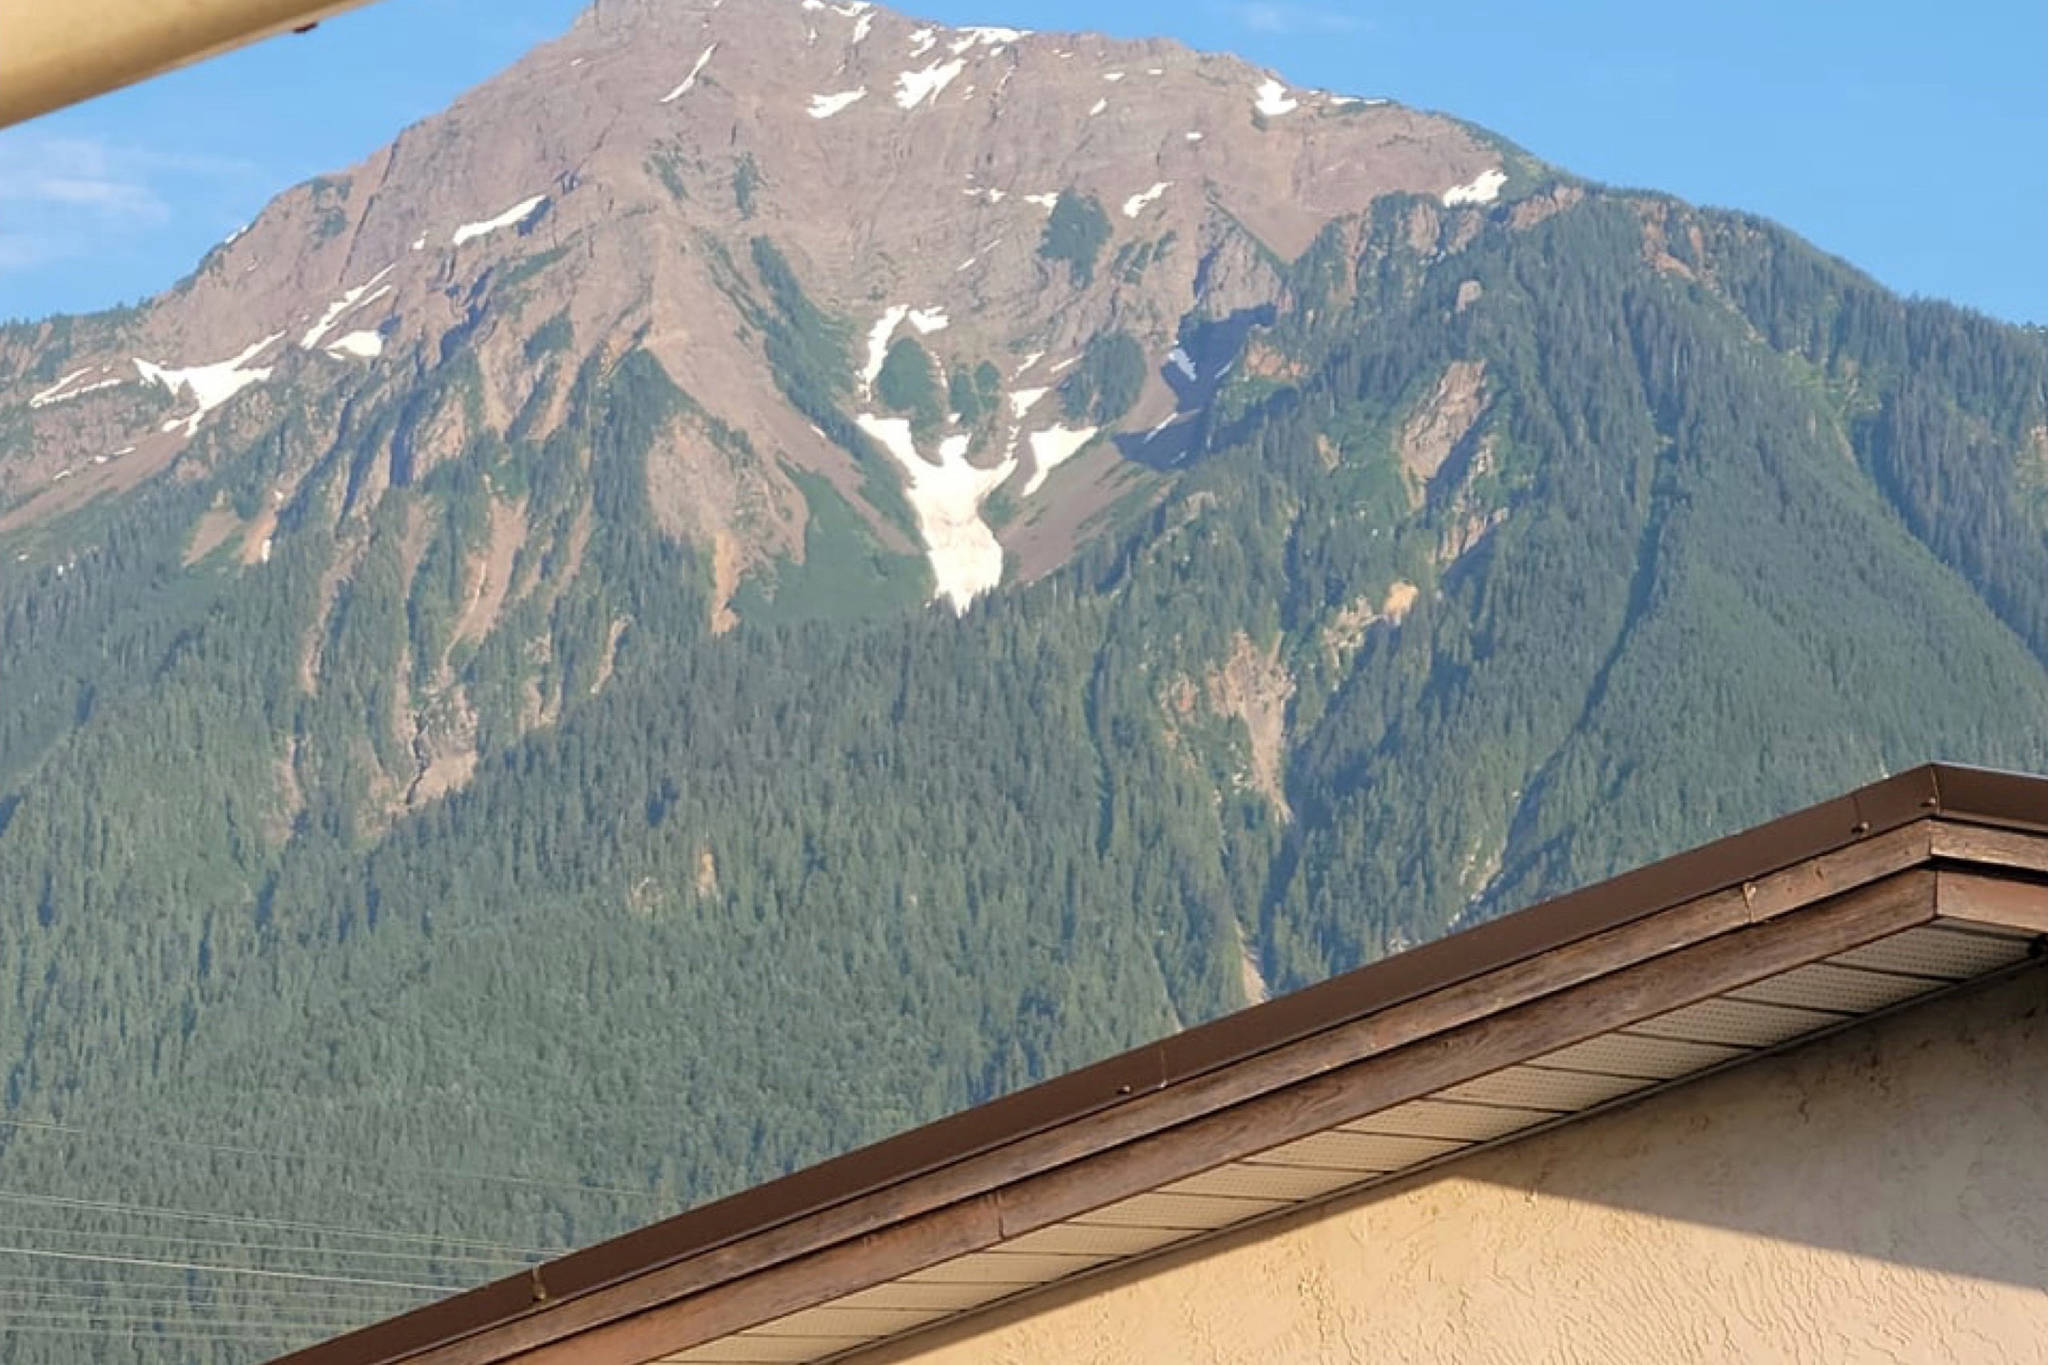 The Angel of Mt. Cheam spreads her wings on the side of the mountain, overlooking Agassiz. This angel forms more often than not in the spring or summer as the snow melts off the mountain and has been featured in many photographs and even a postcard. (Contributed photo/Sarah Gawdin)